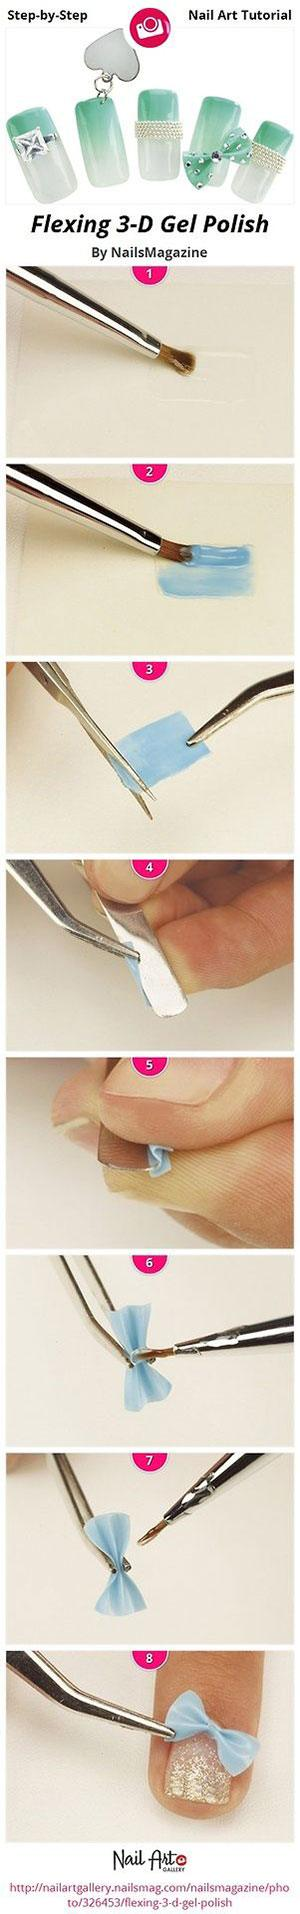 Easy-Simple-Step-By-Step-Gel-Nail-Art-Tutorials-For-Beginners-Learners-2014-10 How to Get Gel Nails- 20 Ideas and Tutorial for Gel Nail Art